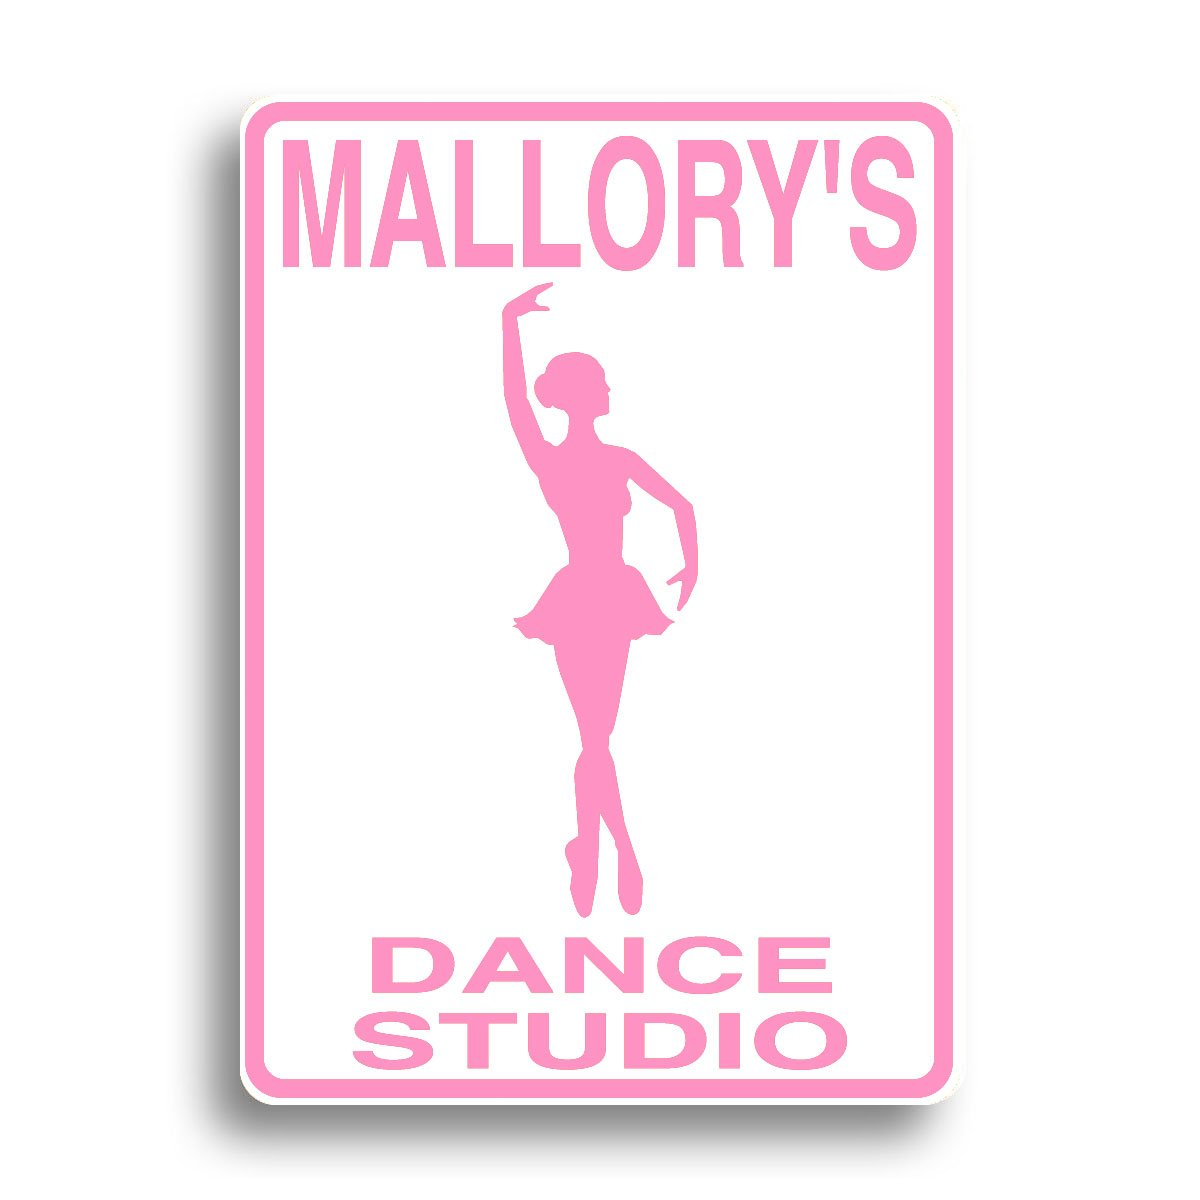 Dance Studio sign personalized and shipped fast!